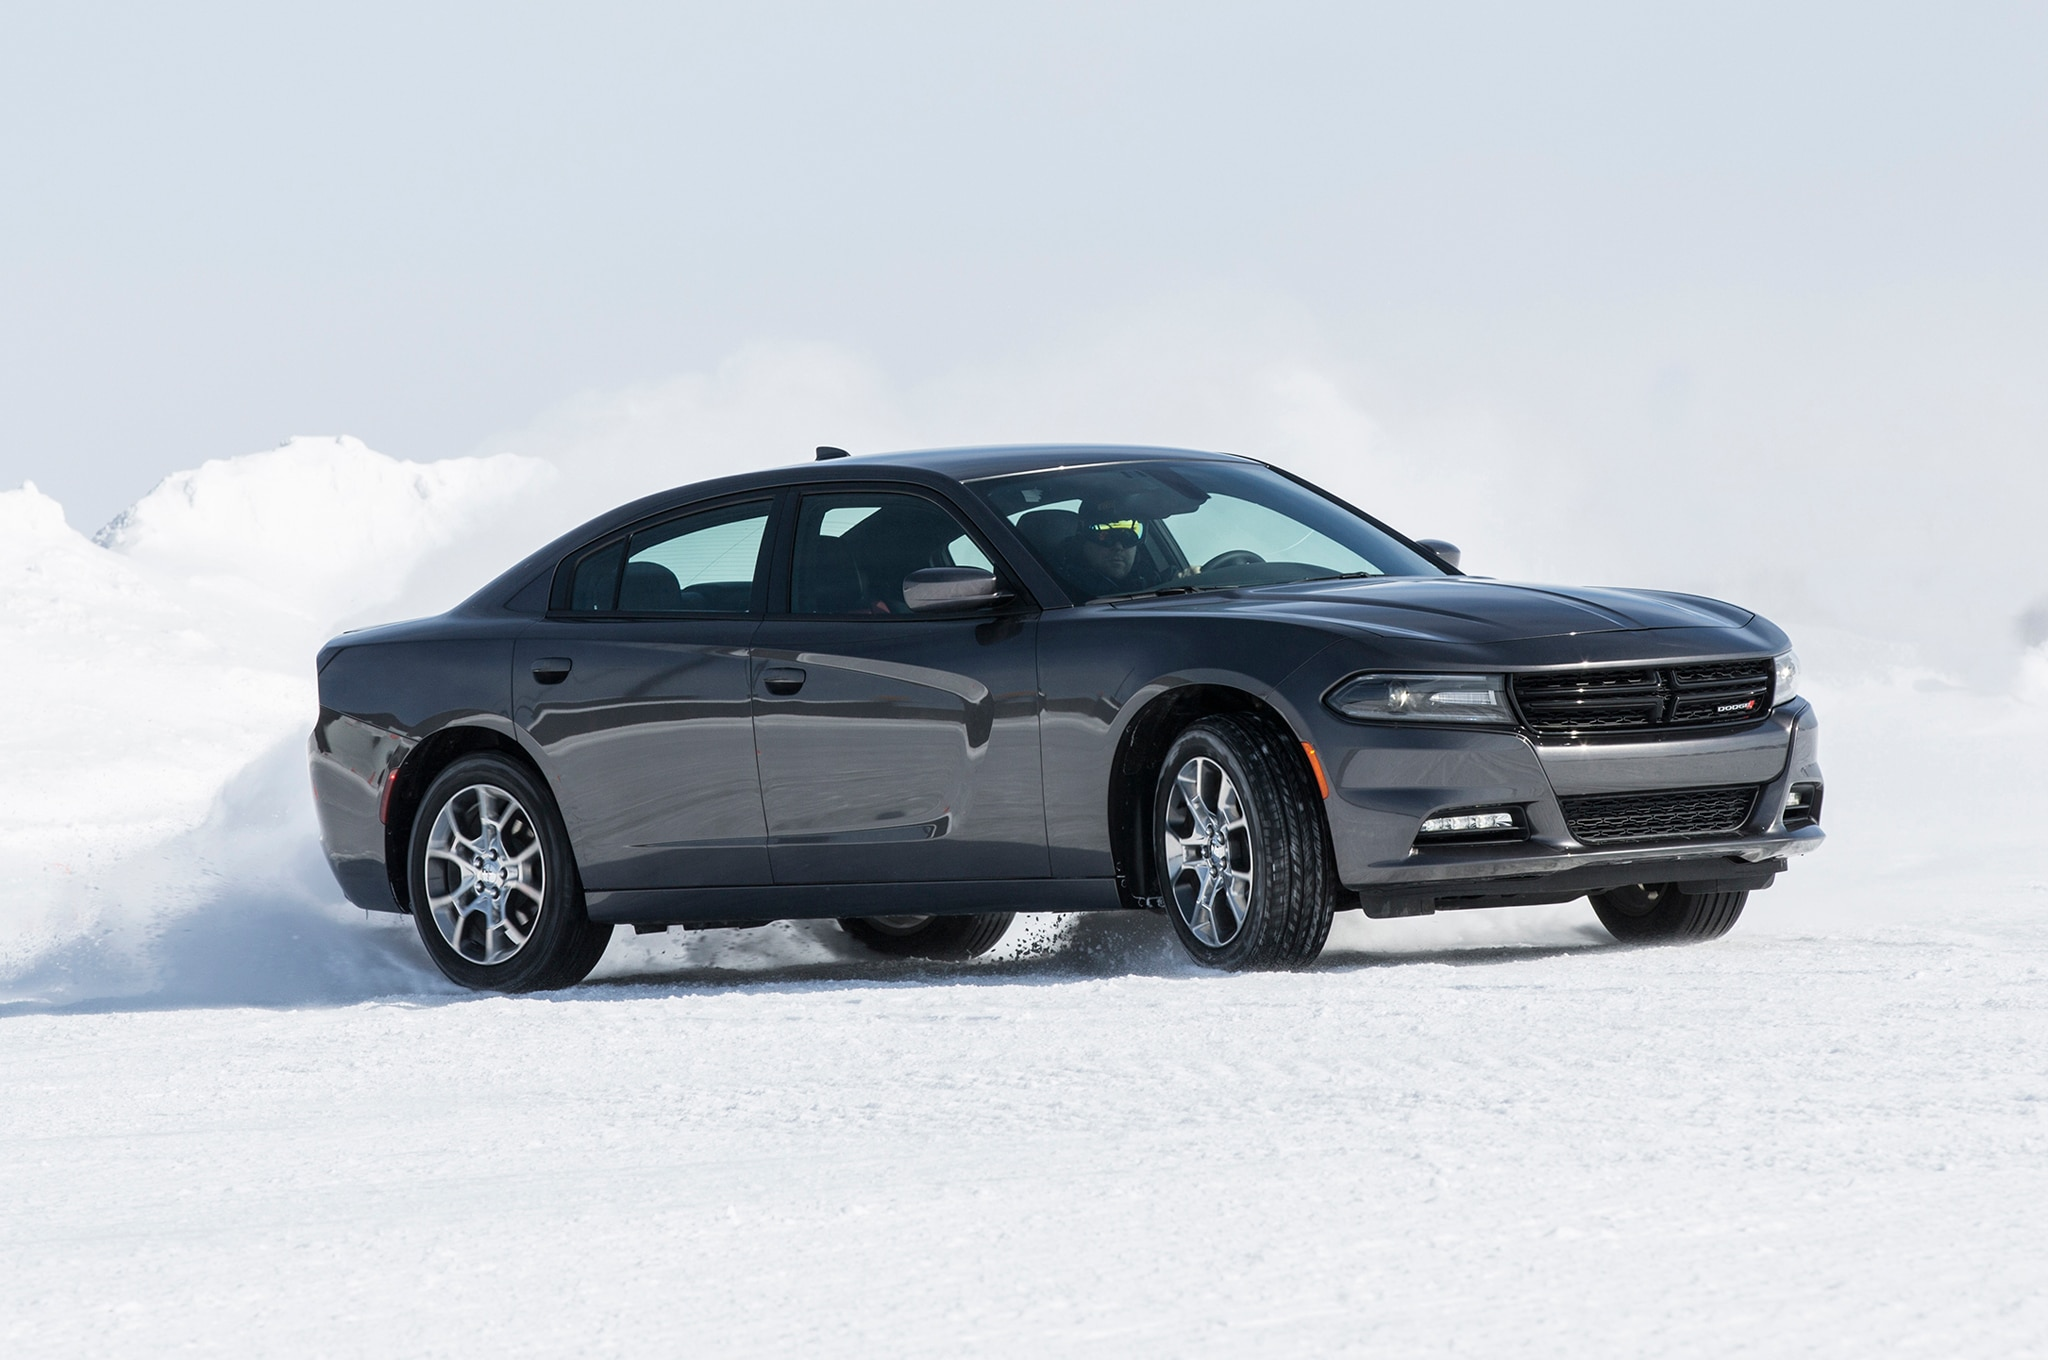 Driving The Dodge Charger Awd Chrysler Awd In Snow